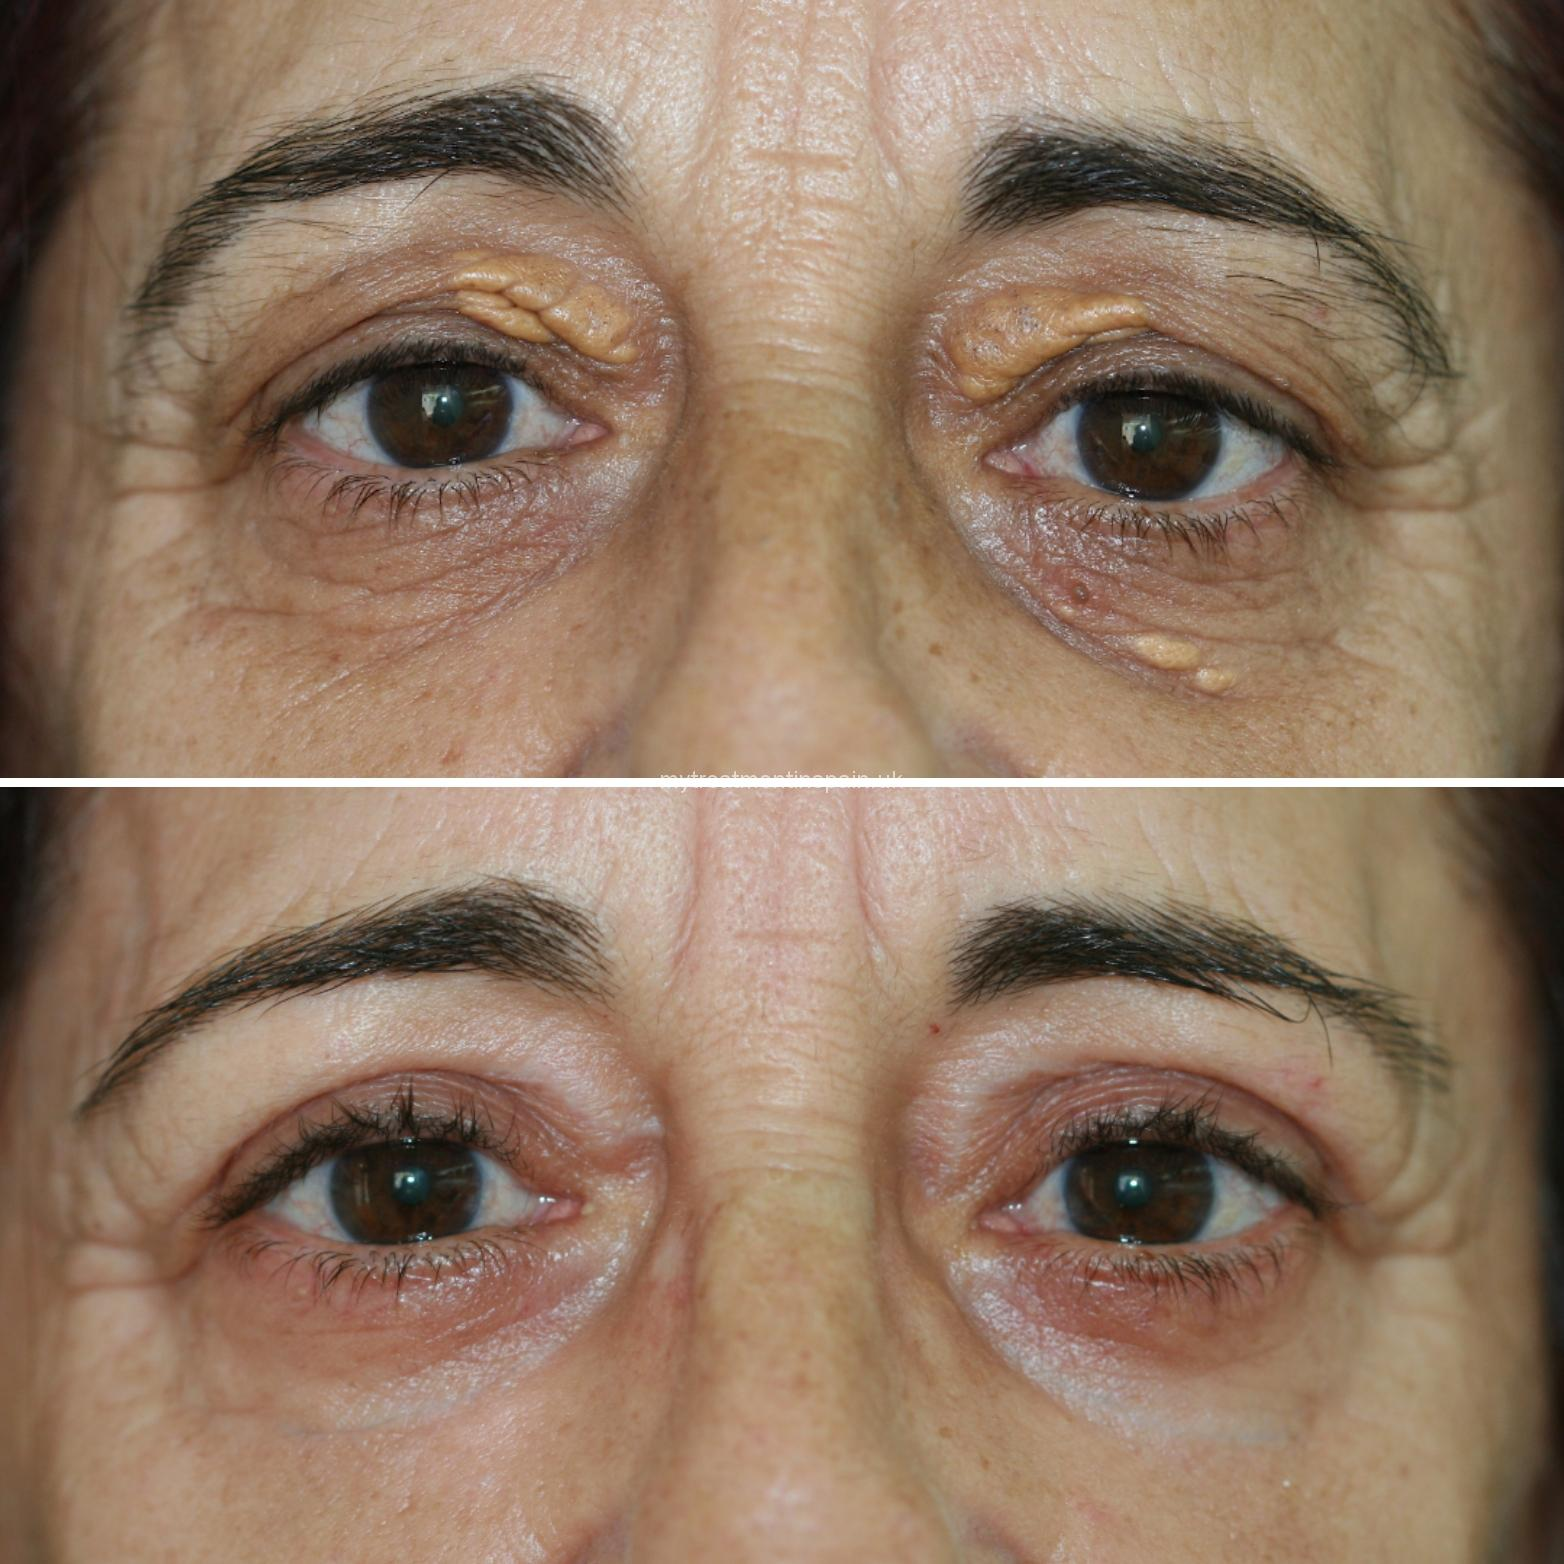 What is the correct age to undergo a blepharoplasty? Benidorm, Alicante, Spain